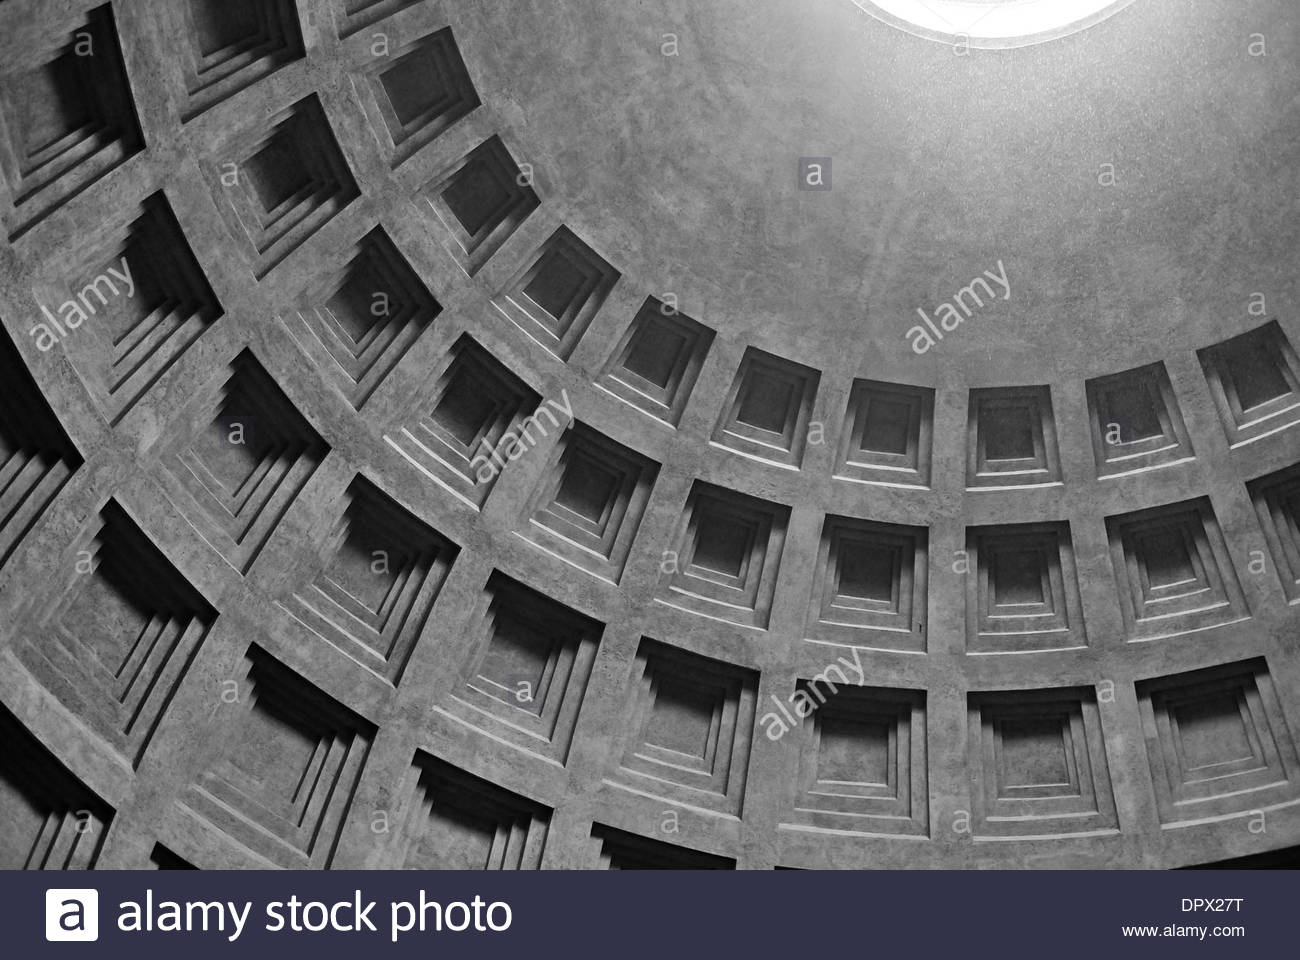 Ceiling of the Pantheon temple in Rome, Italy - Stock Image